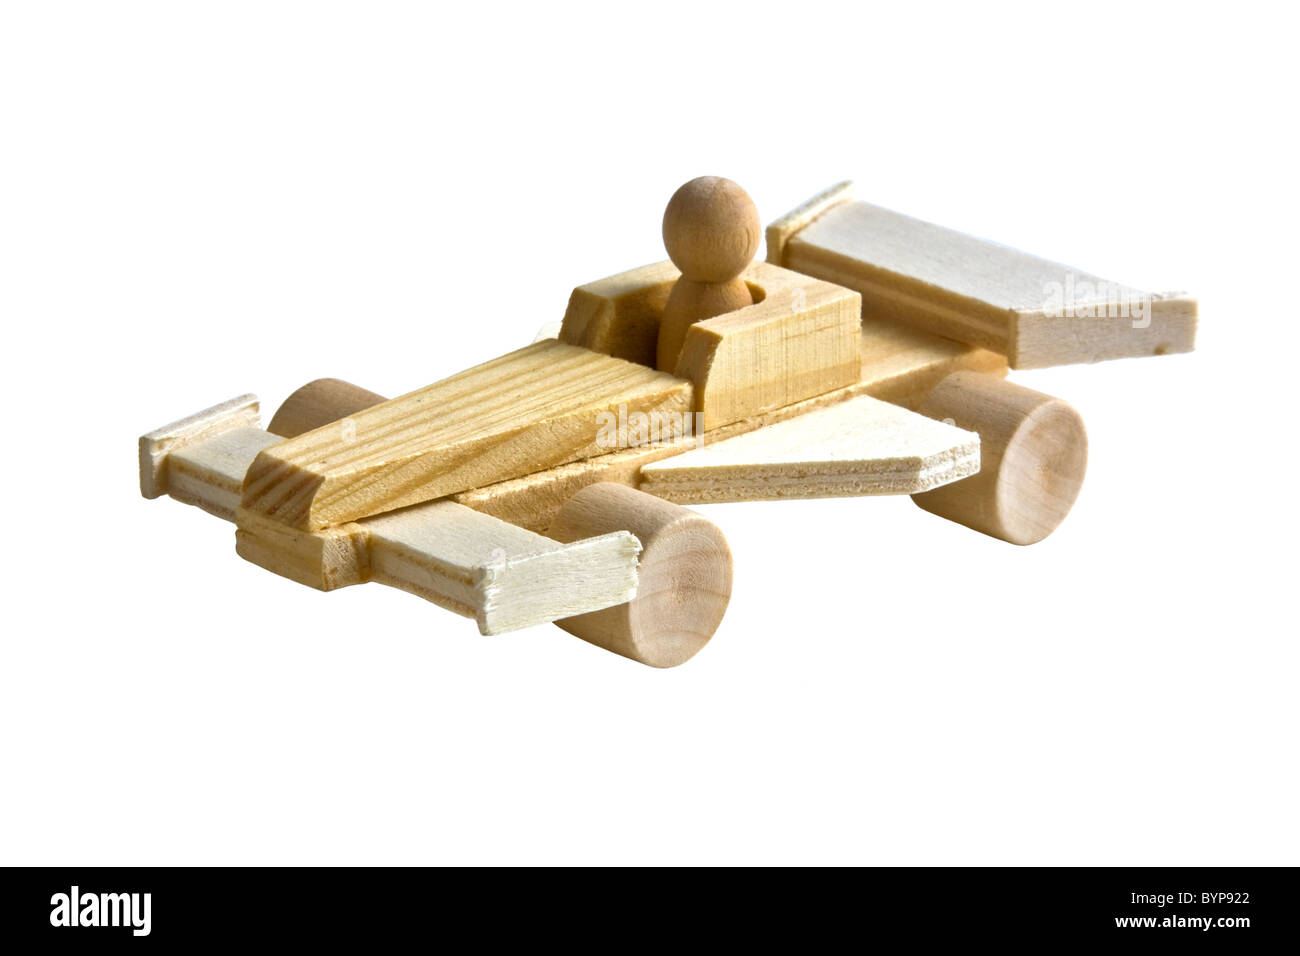 Wooden toy race car with driver on white background - Stock Image